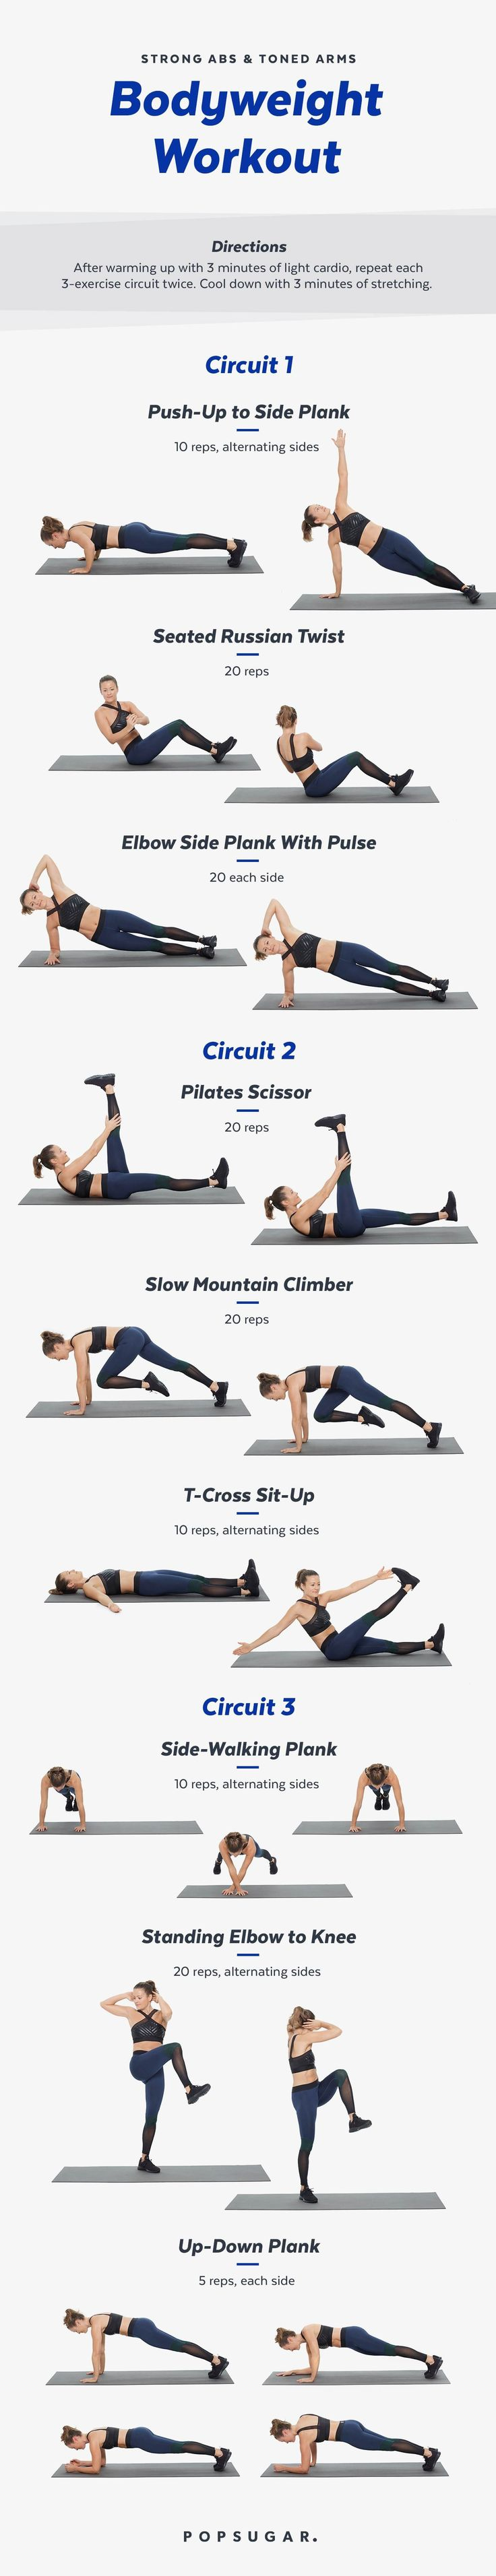 Printable Bodyweight Workout For Abs and Arms | POPSUGAR Fitness